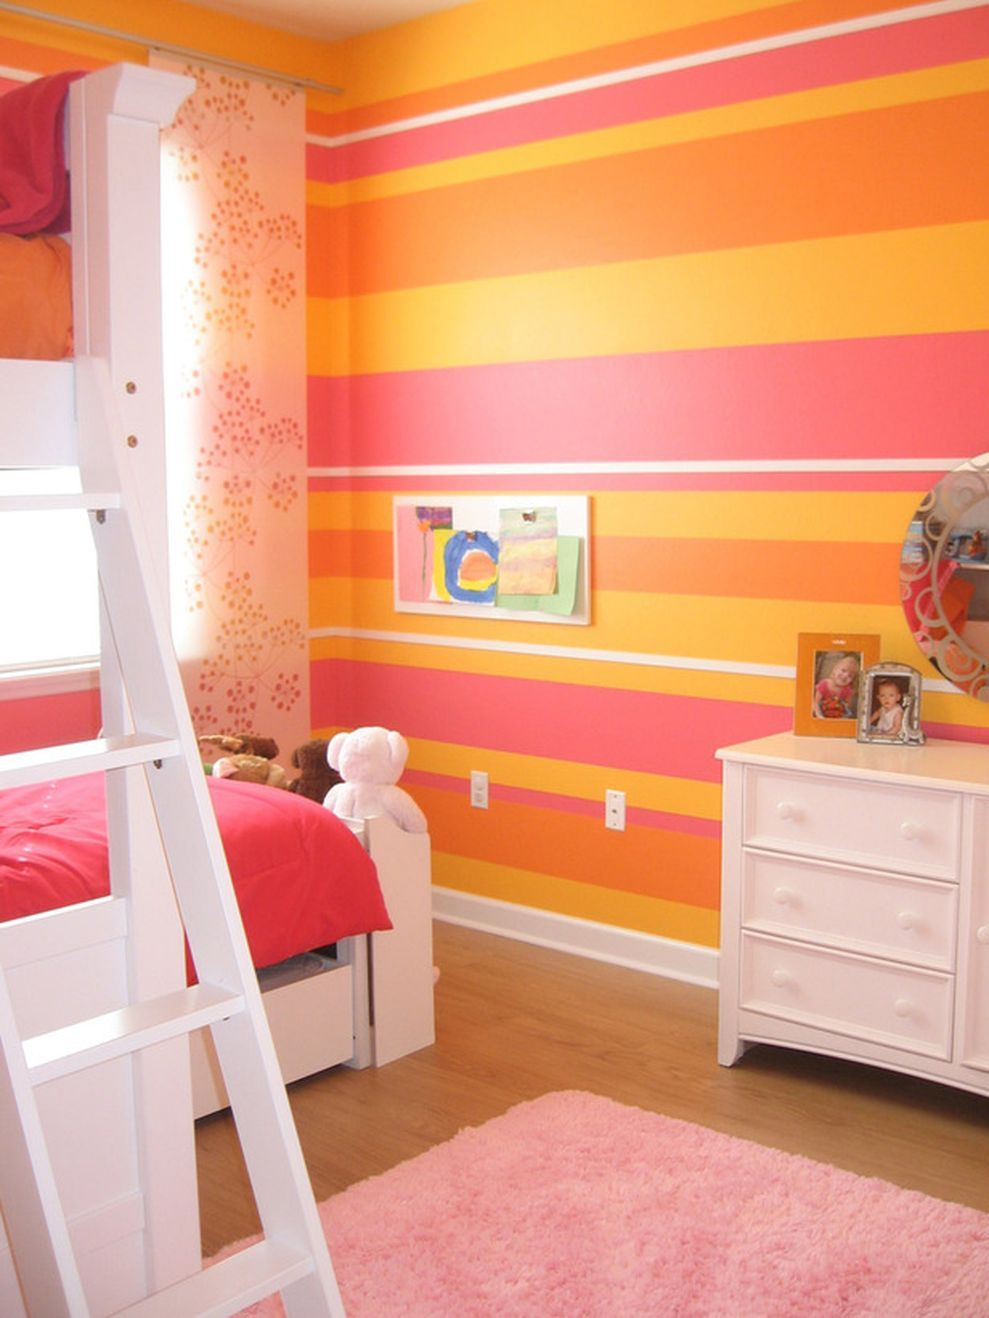 orange and pink bedroom ideas